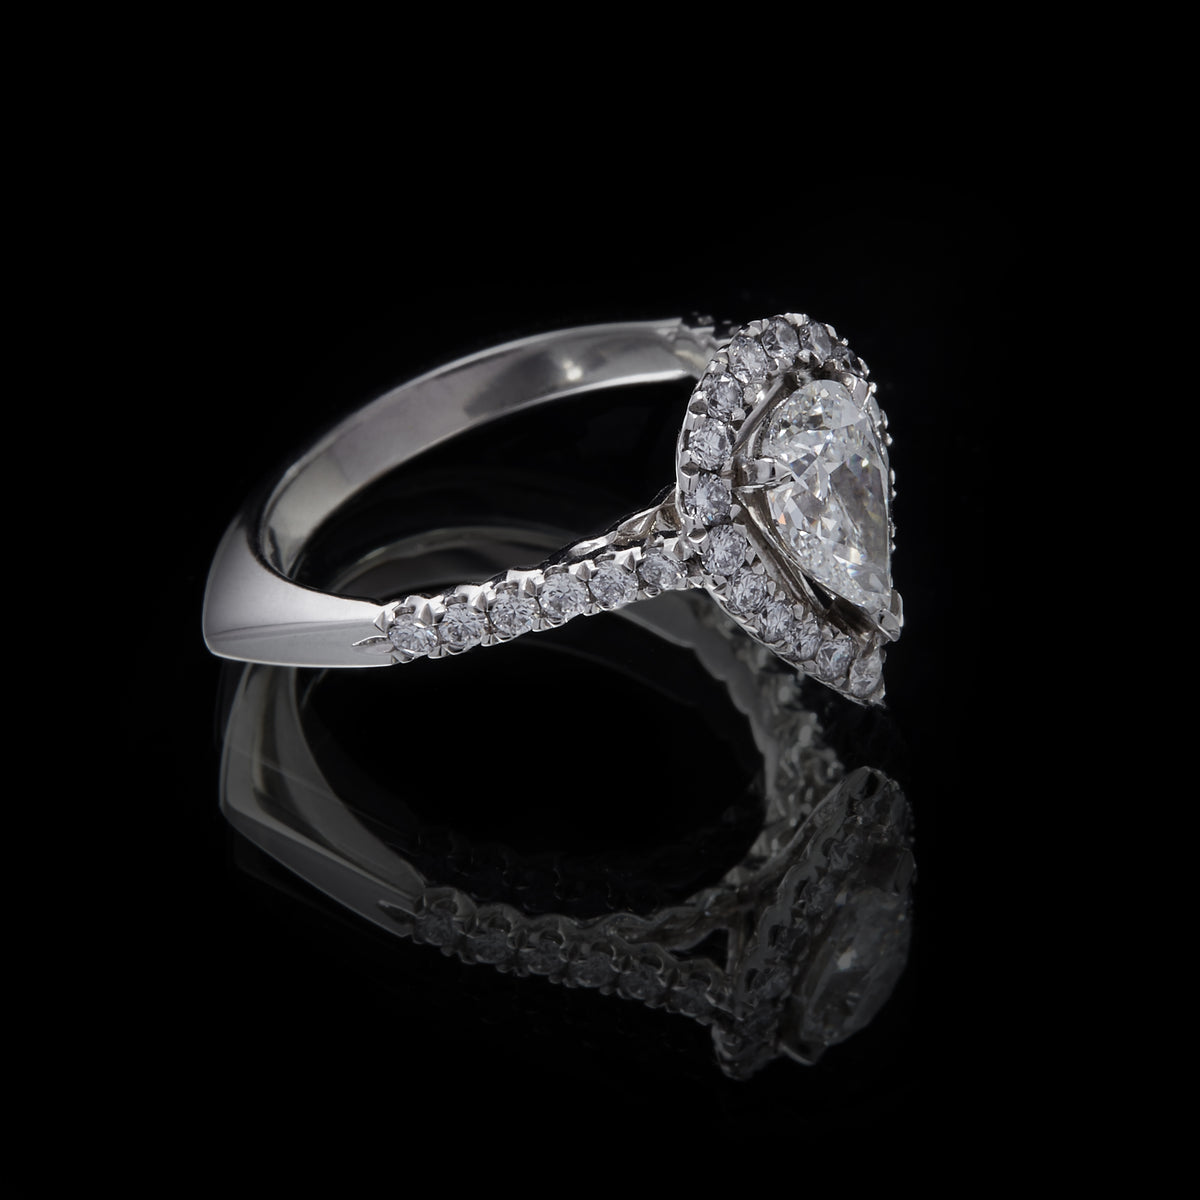 Picture of Platinum Pearshape Diamond Ring with Round Brilliant Cut Diamond Cluster and  Shoulders, side view